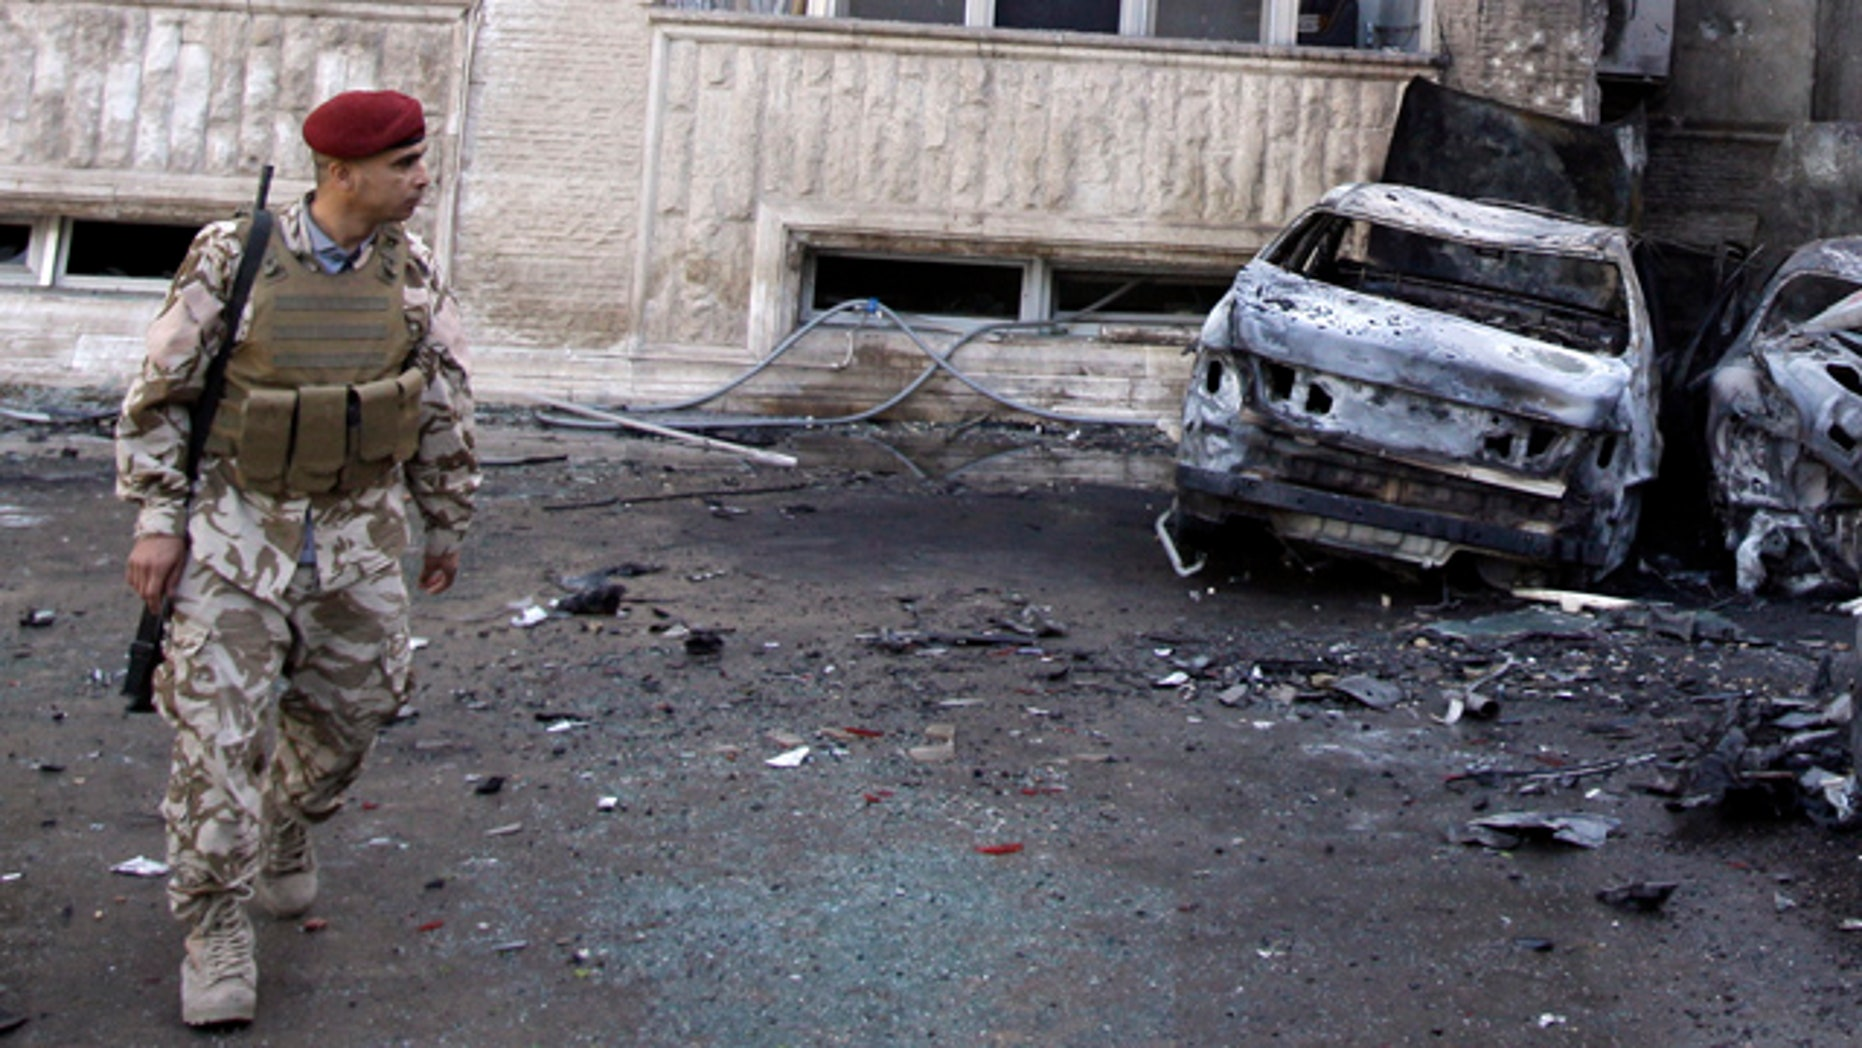 March 29: An Iraqi soldier inspects the scene of a rocket attack in Baghdad, Iraq.